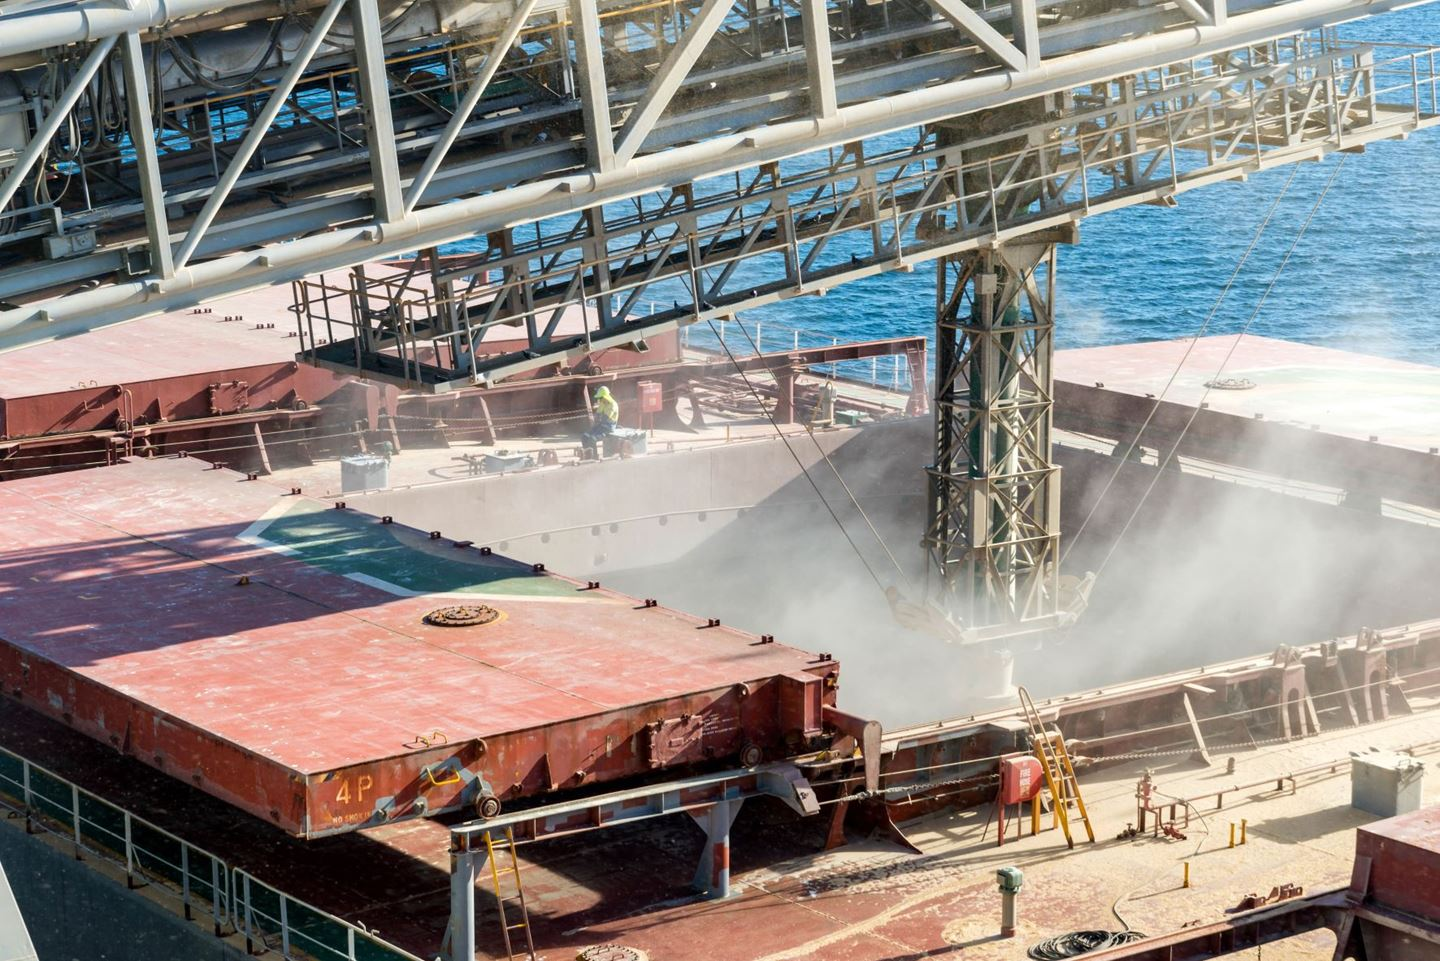 A shiploading structure discharges grain into the open hatch of a ship, grain dust is flying everywhere